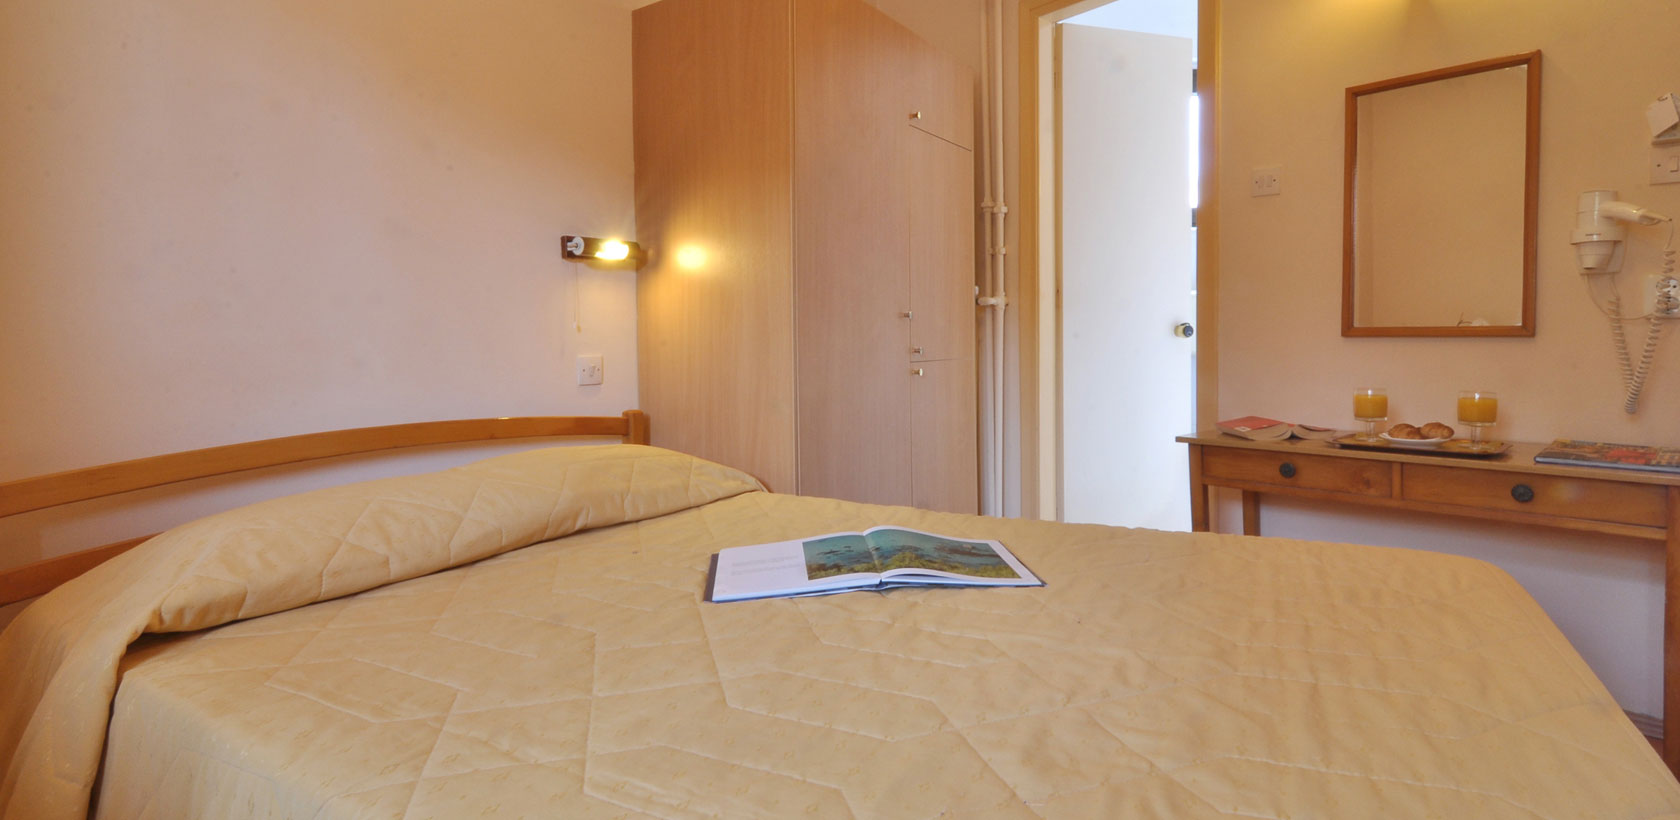 Corfu Accommodation - Single Room